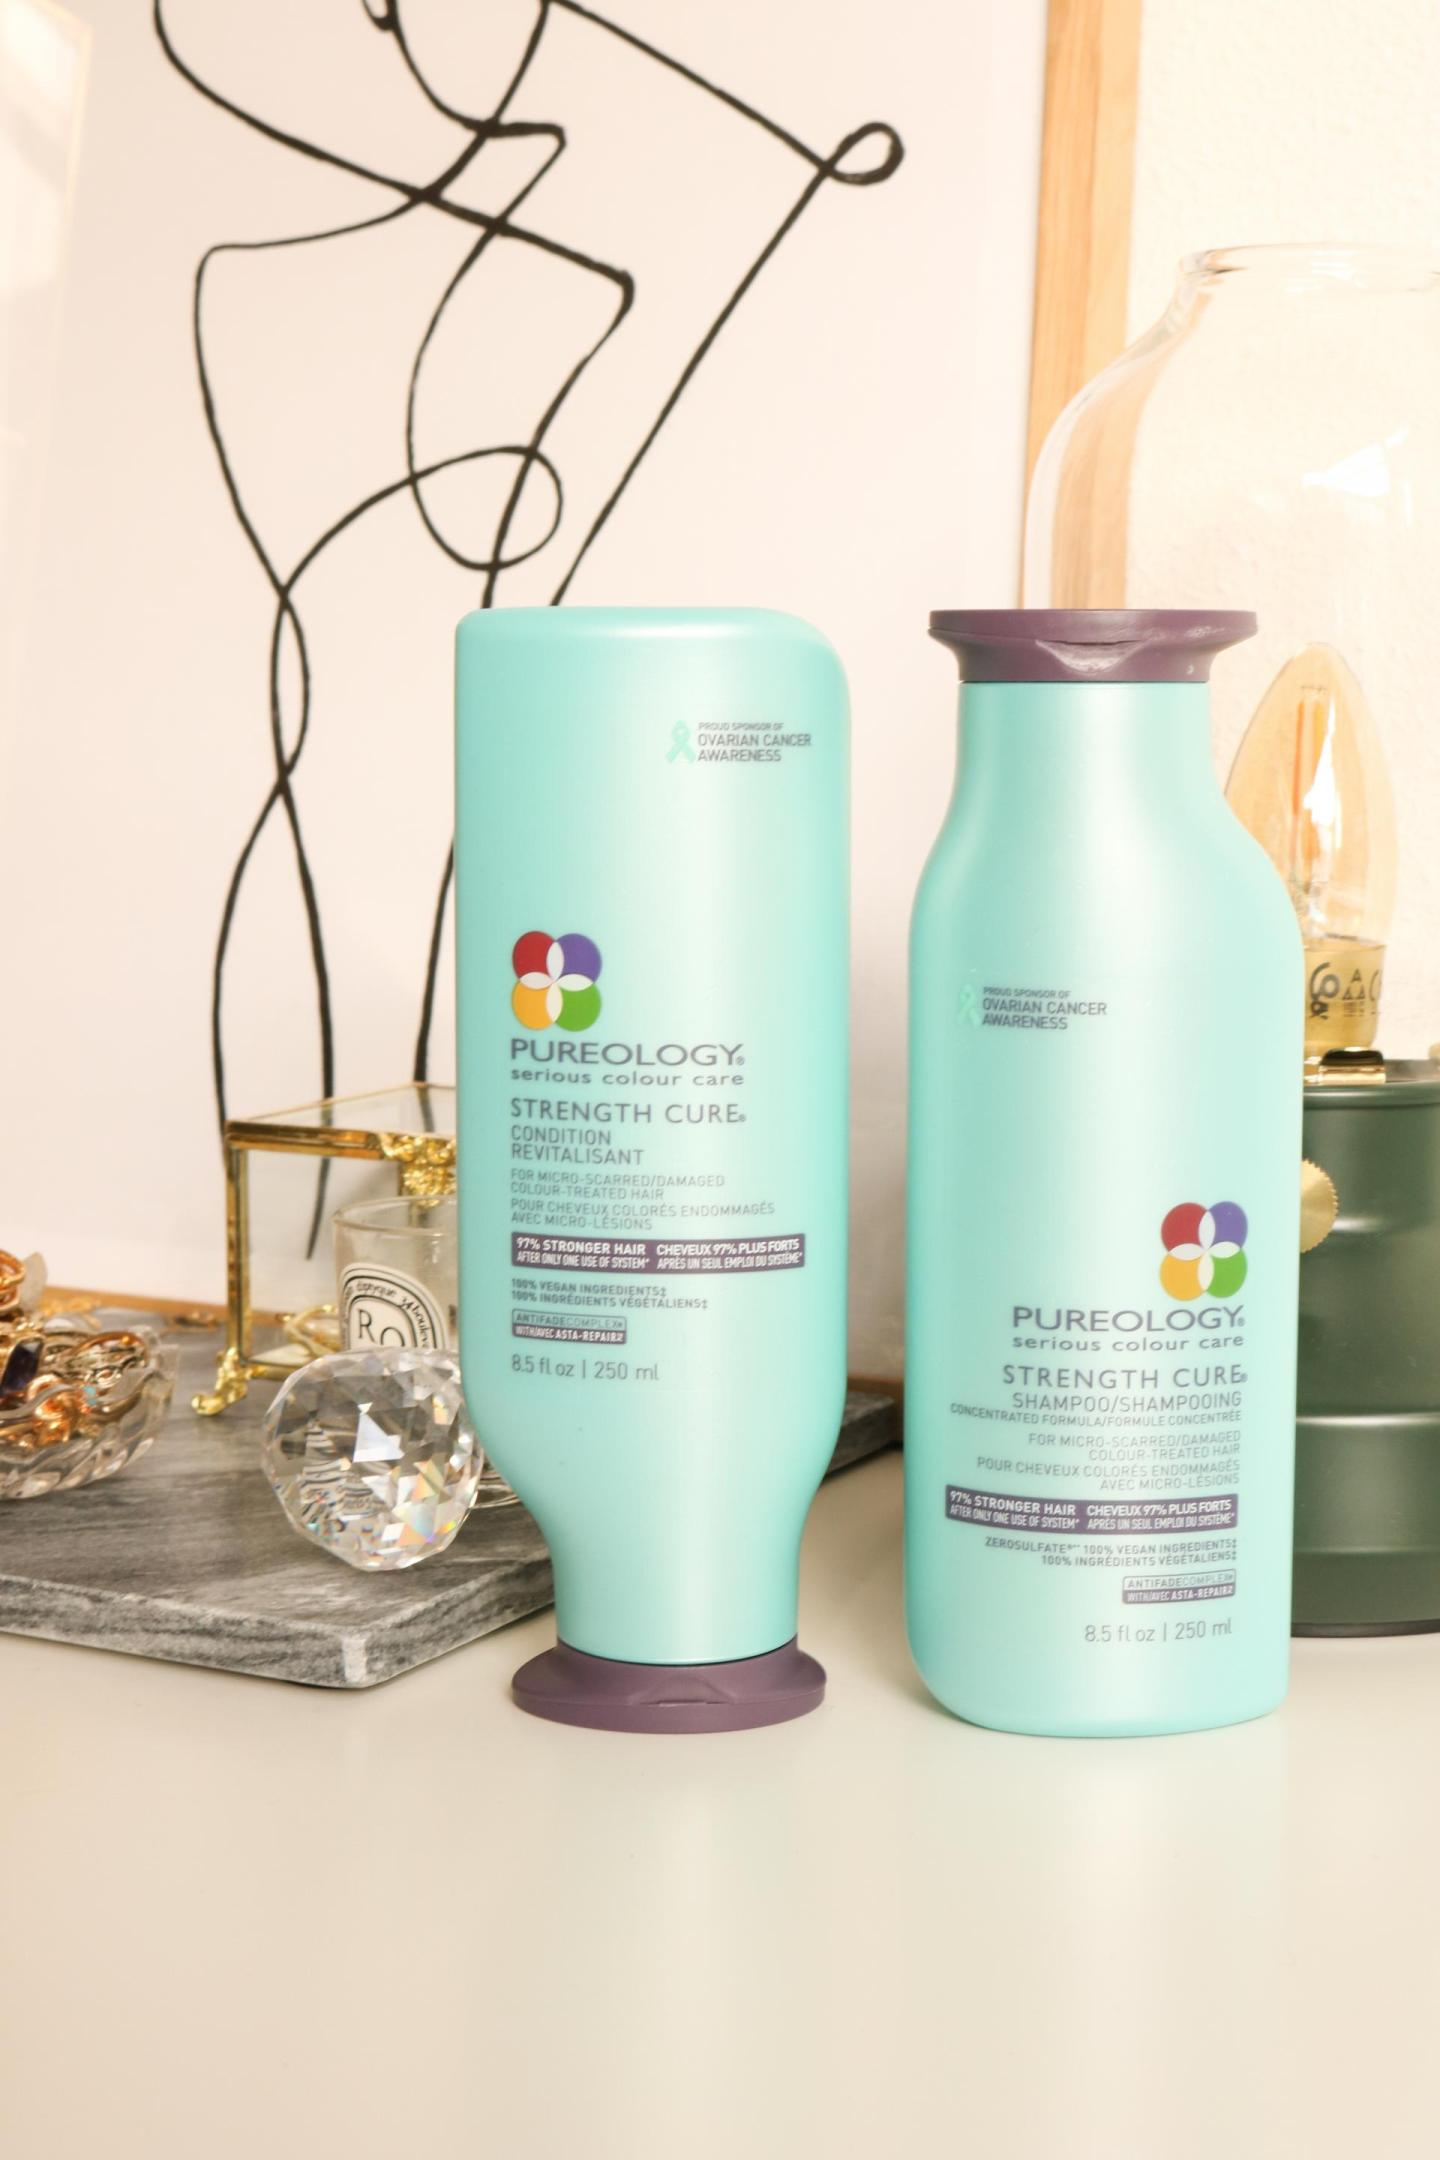 Pureology Strength Cure Shampoo Condition